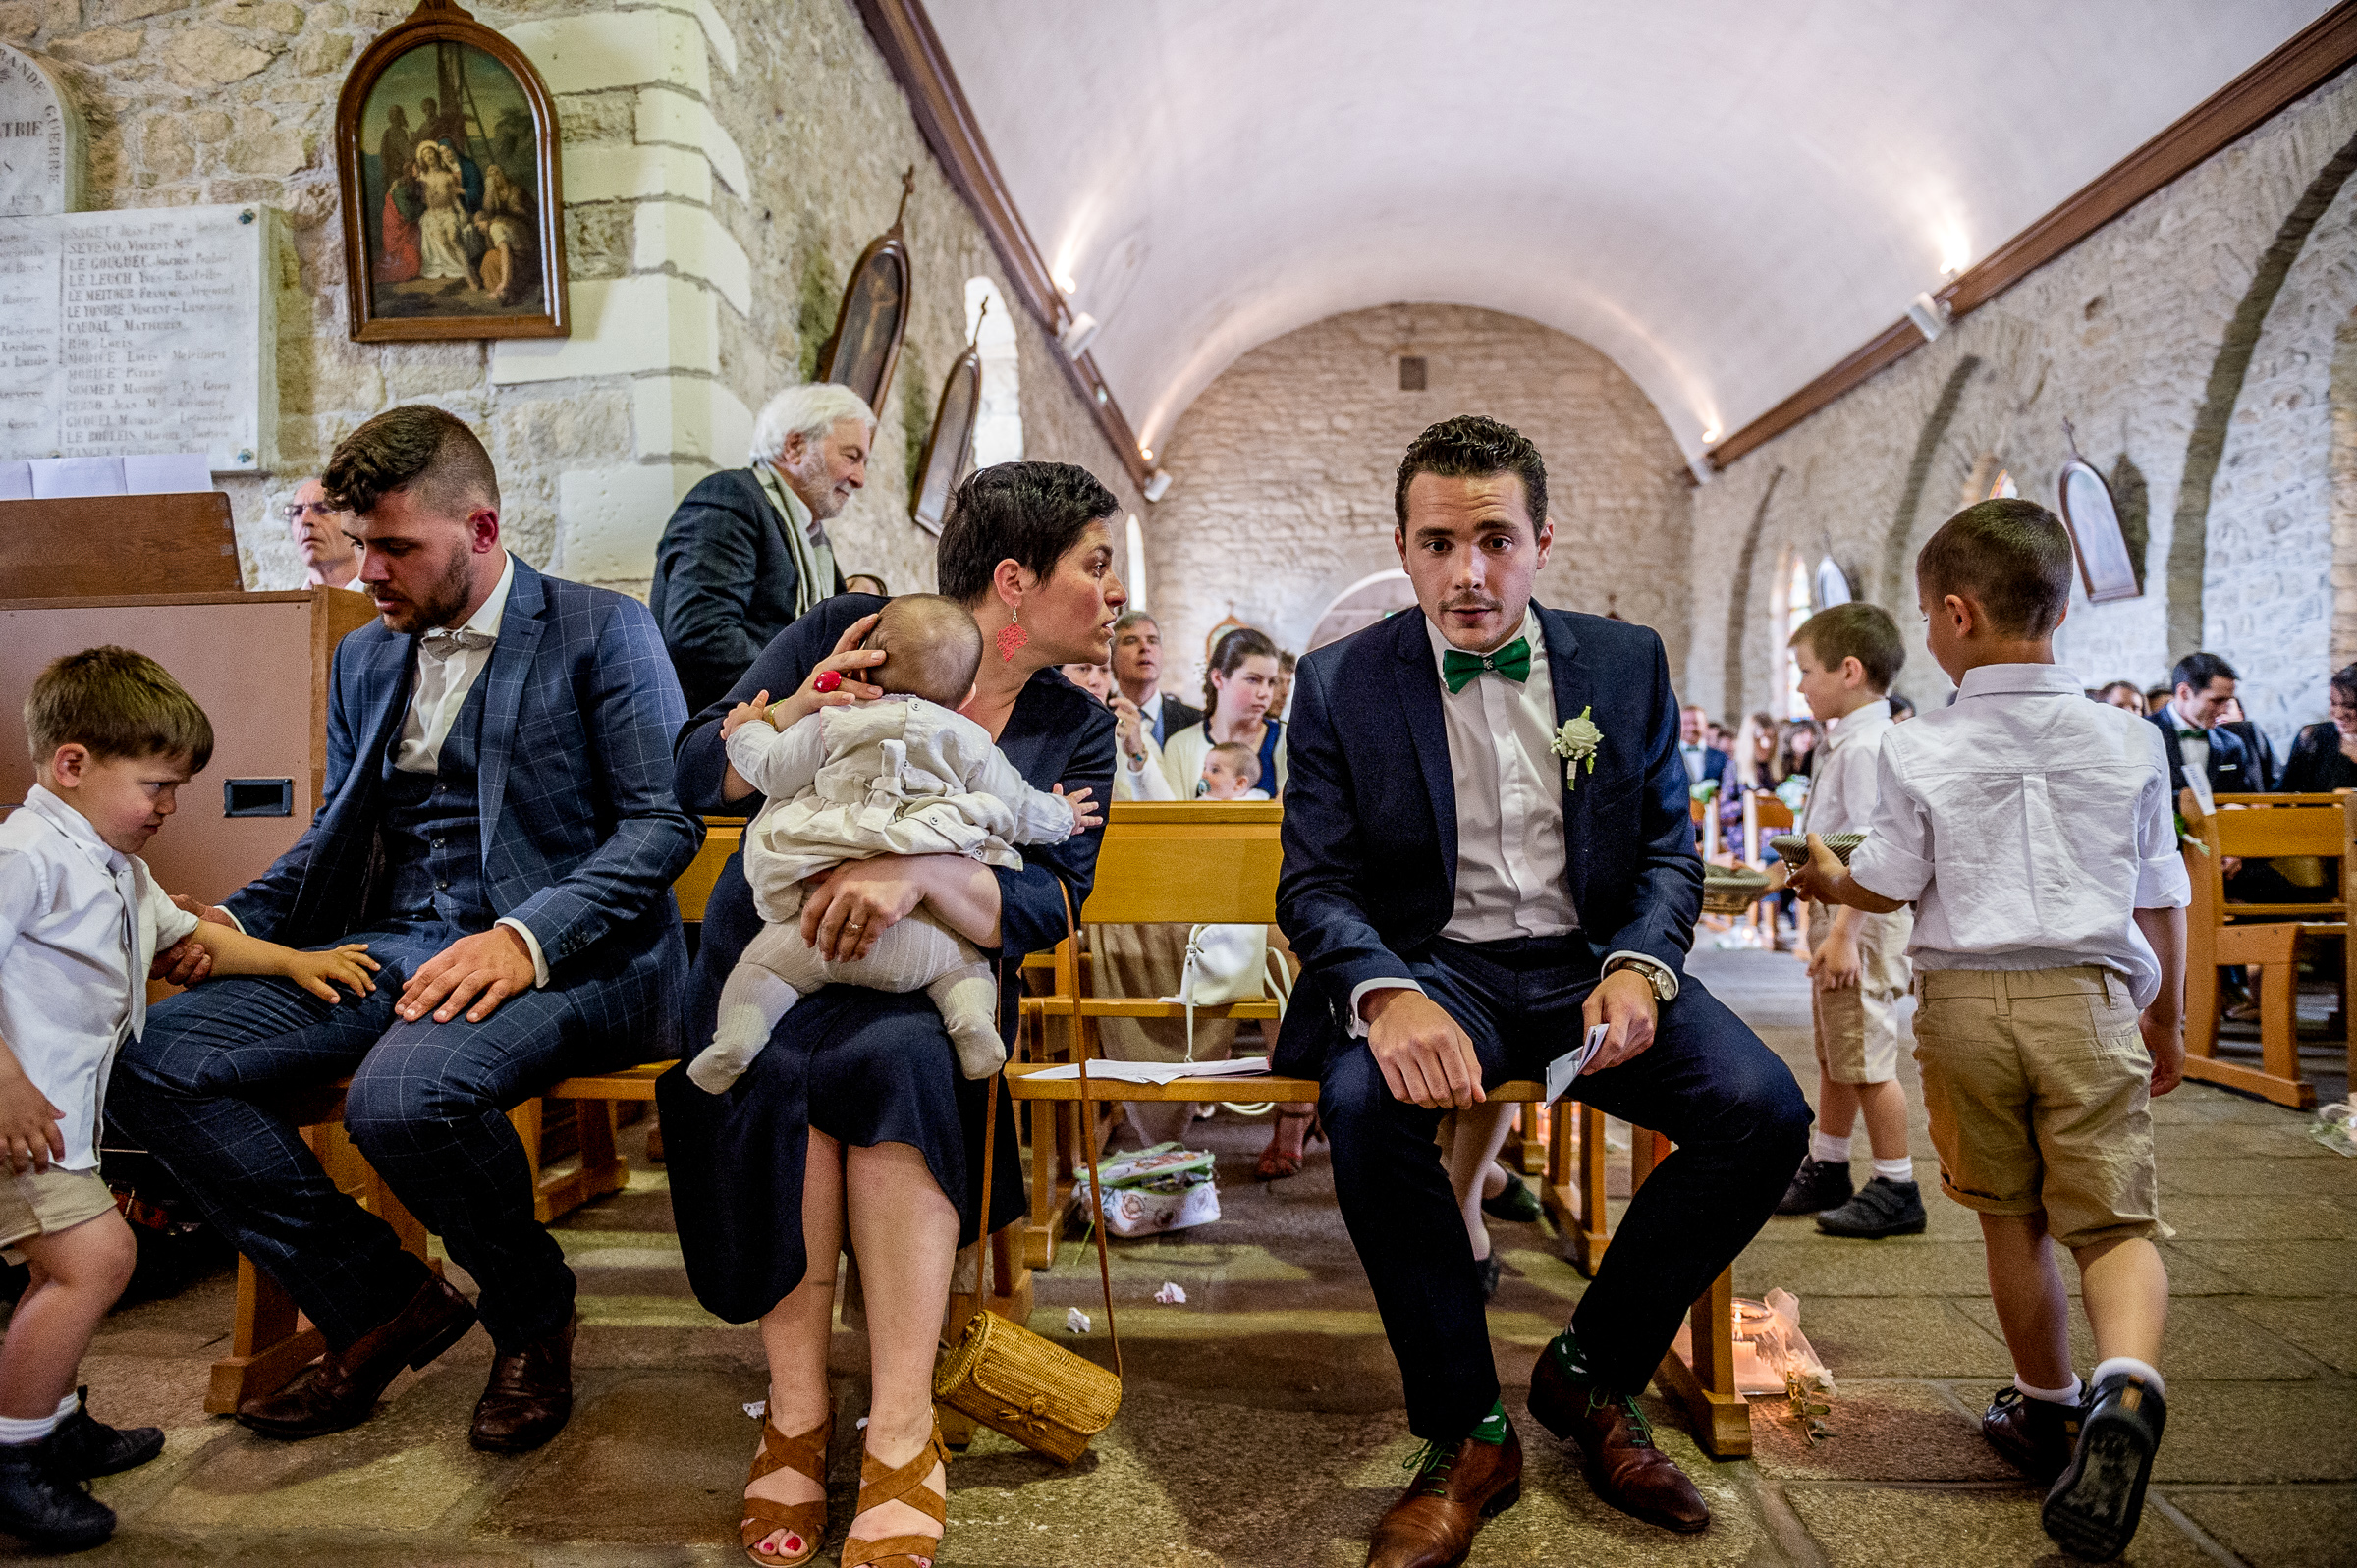 Candid moment of groom and guest - photo by Gaelle Le Berre Photography